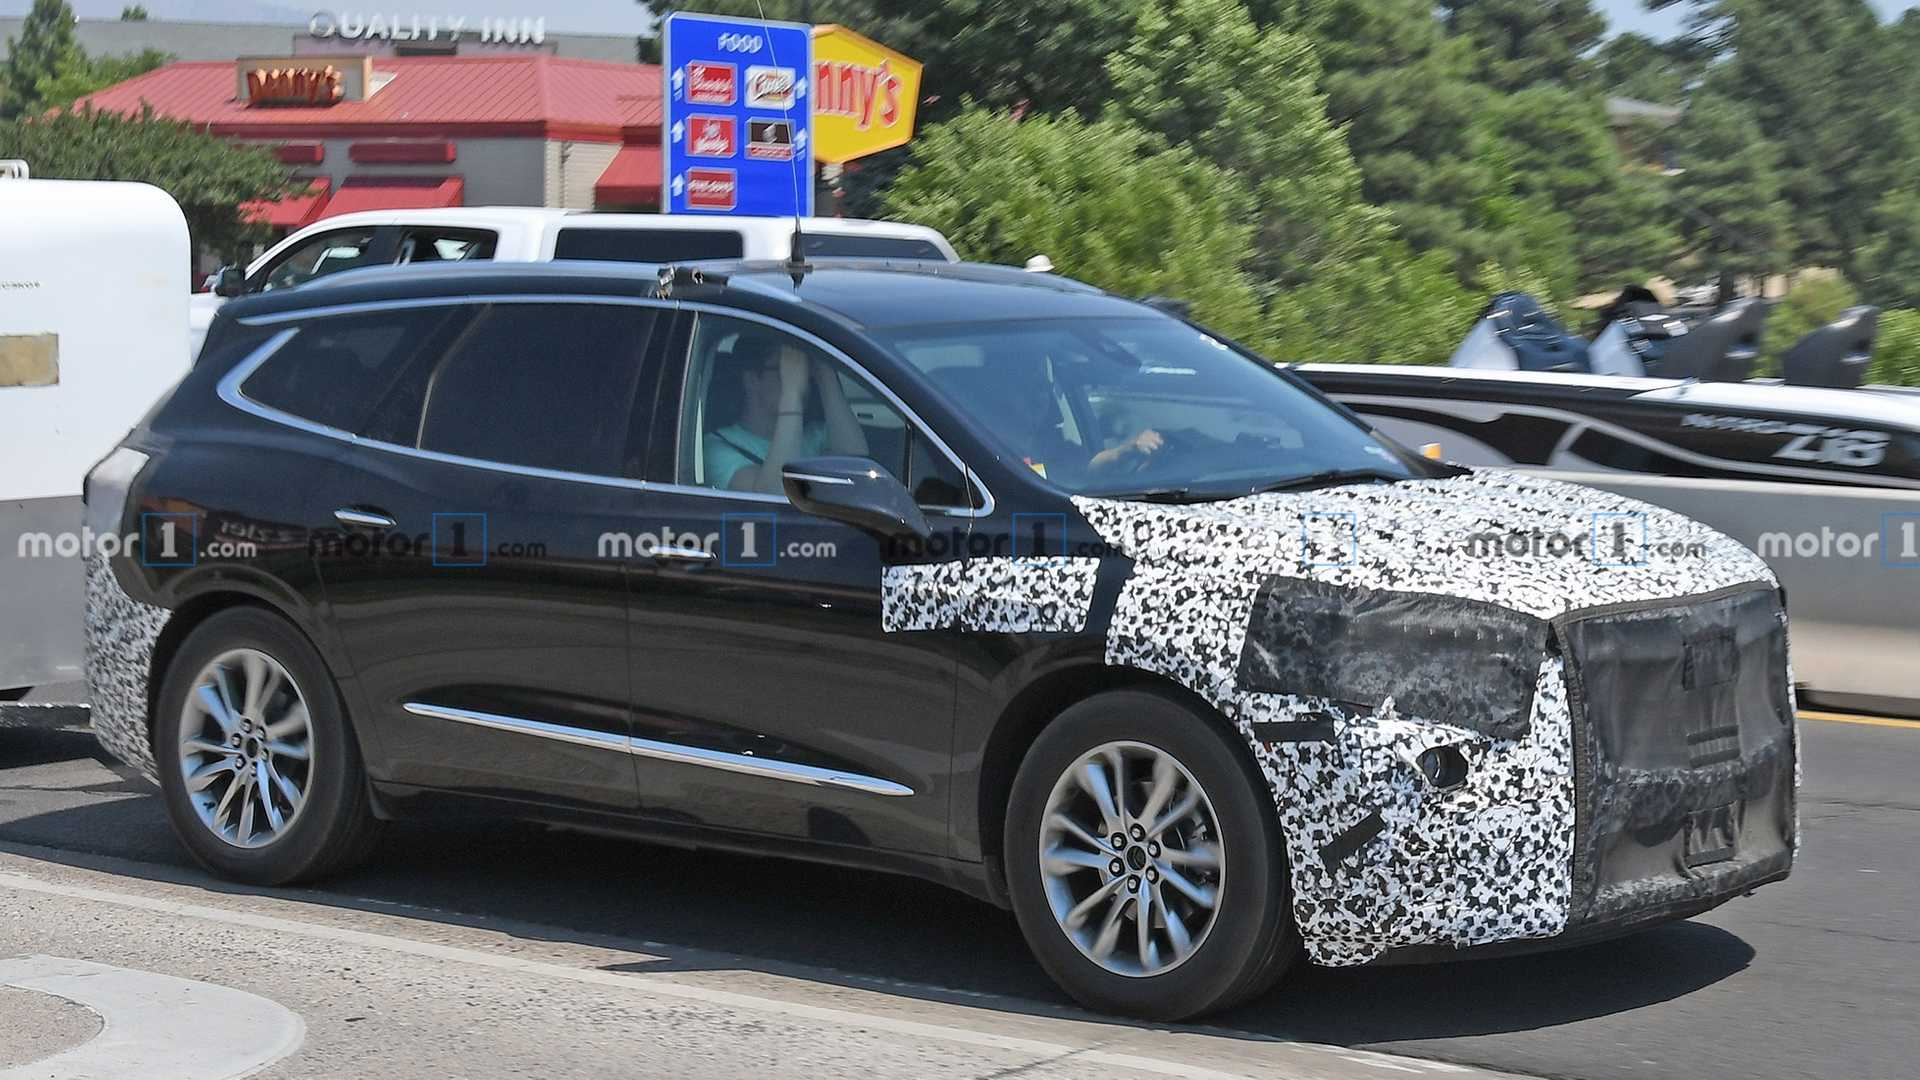 2021 Buick Enclave Spied For The First Time New 2022 Buick Enclave Avenir Engine, Specs, Lease